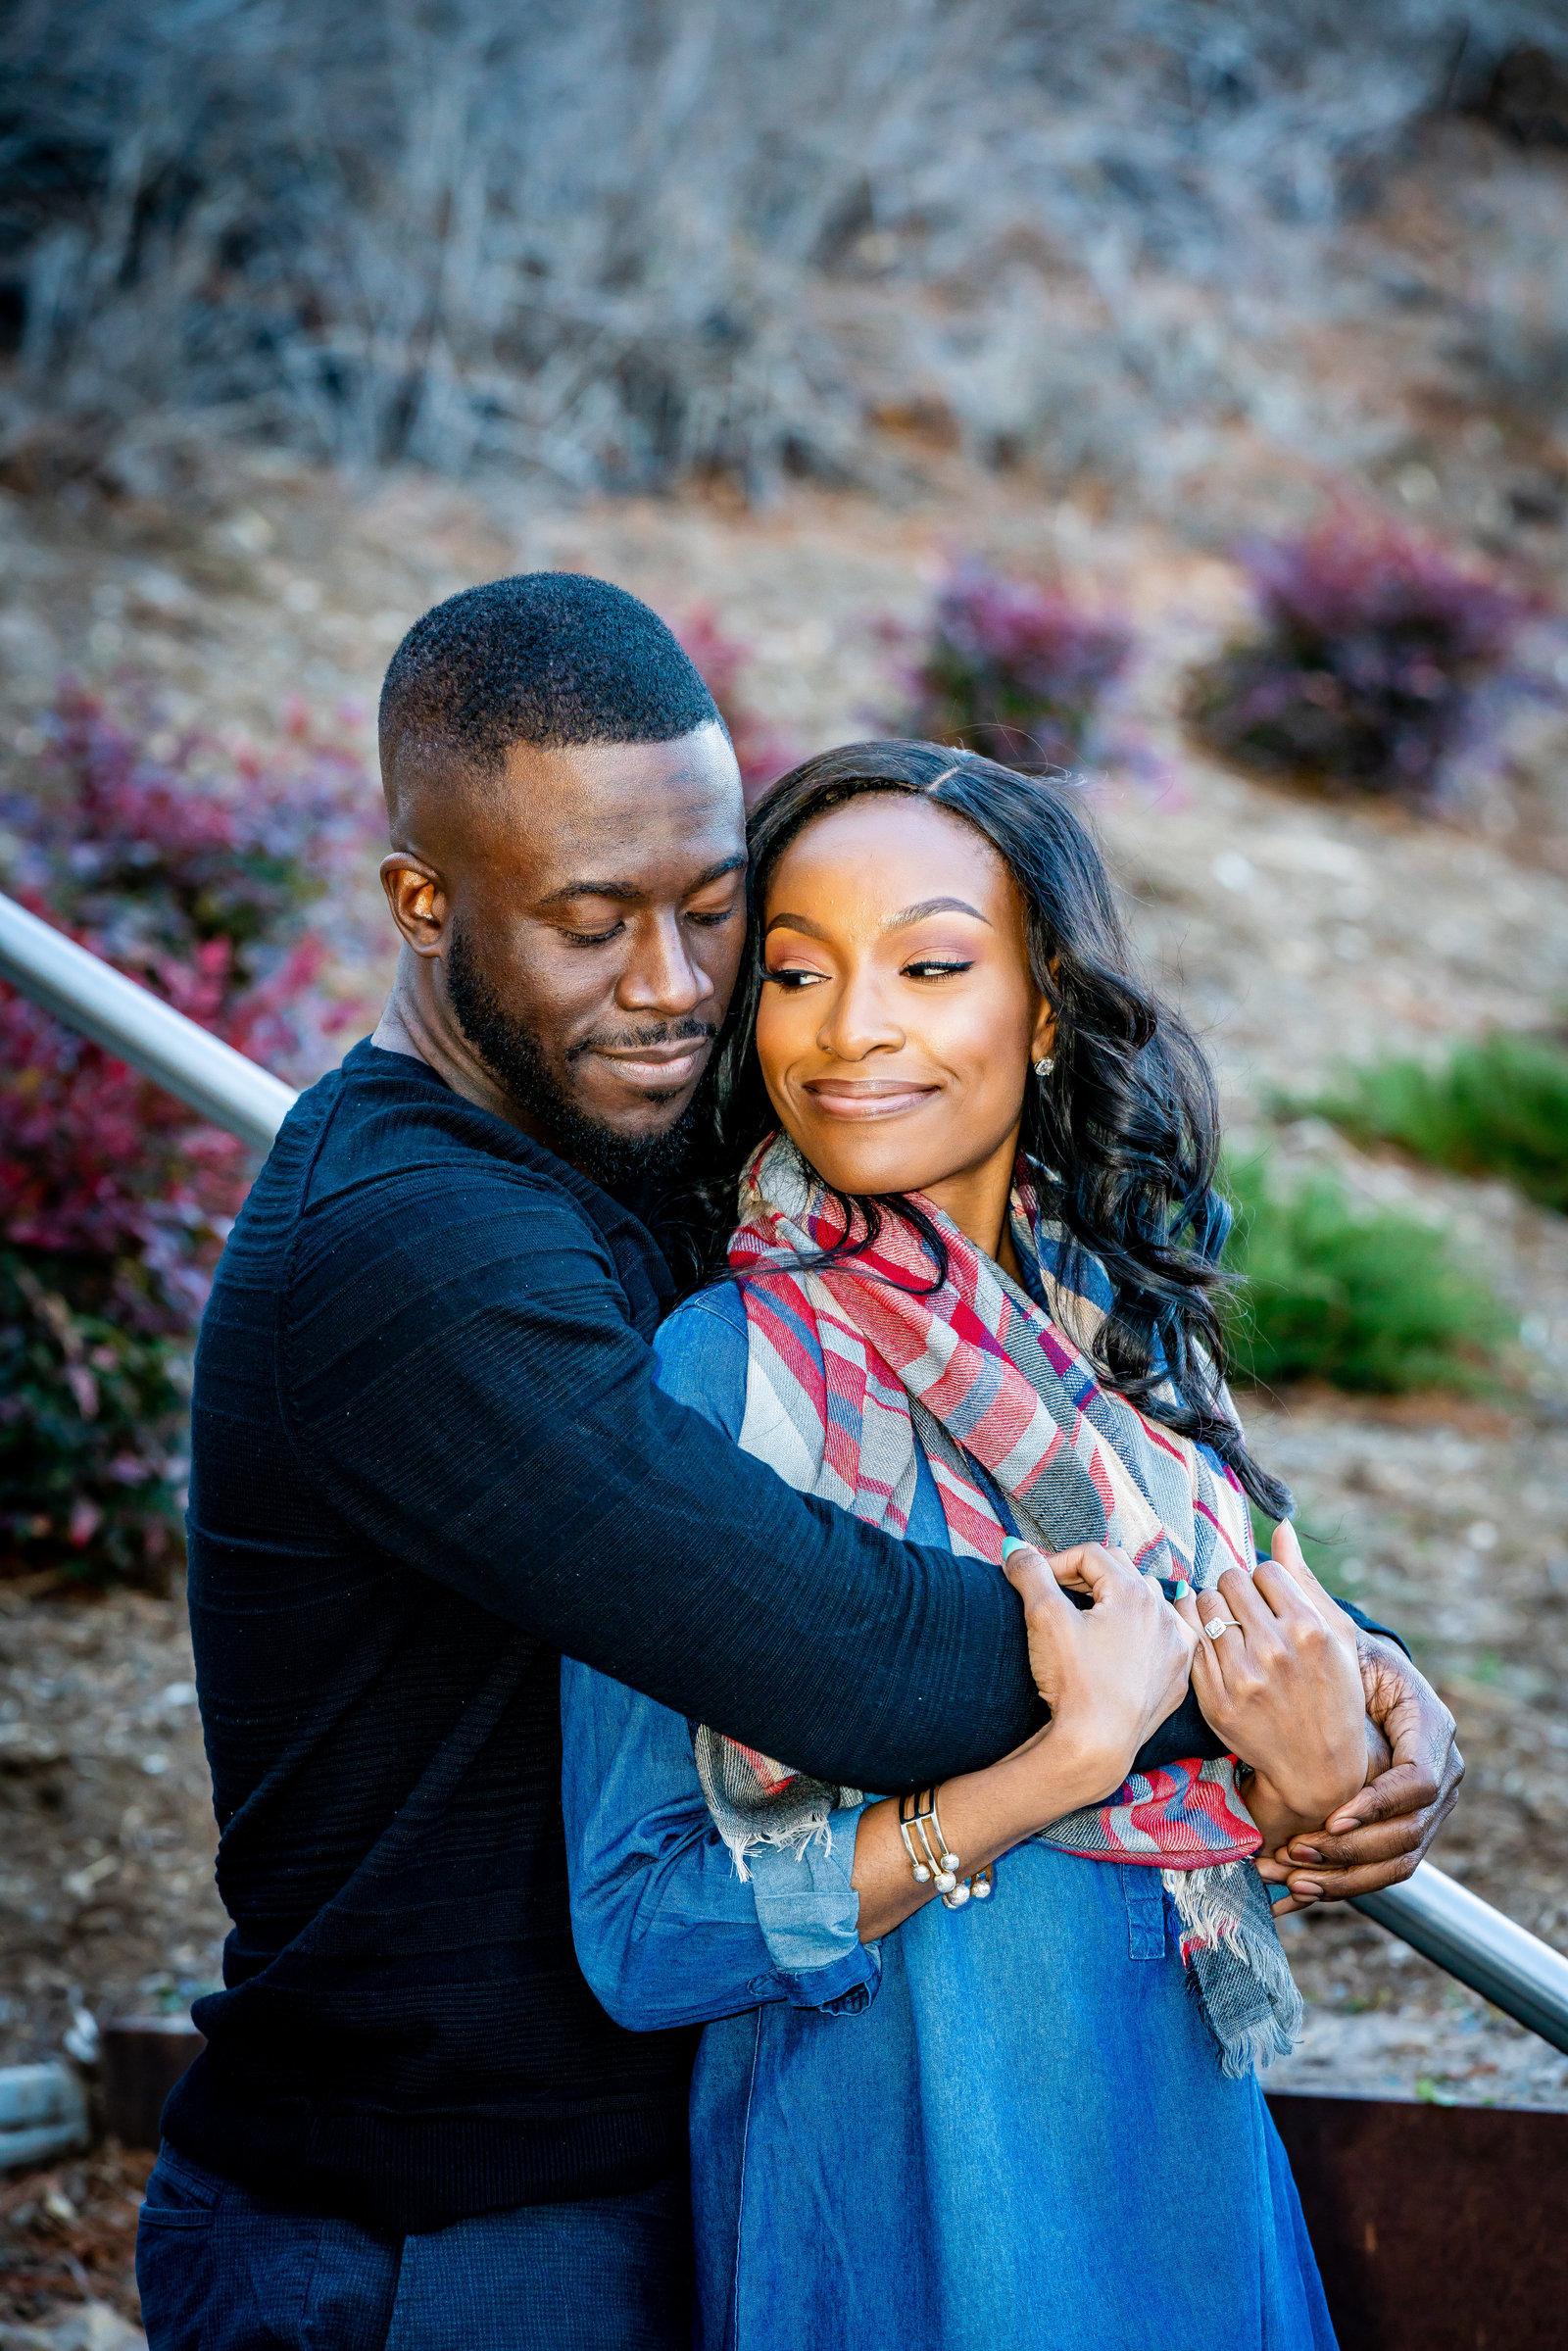 Bricktown-oklahoma-city-engagement-session-405-brides-photographer